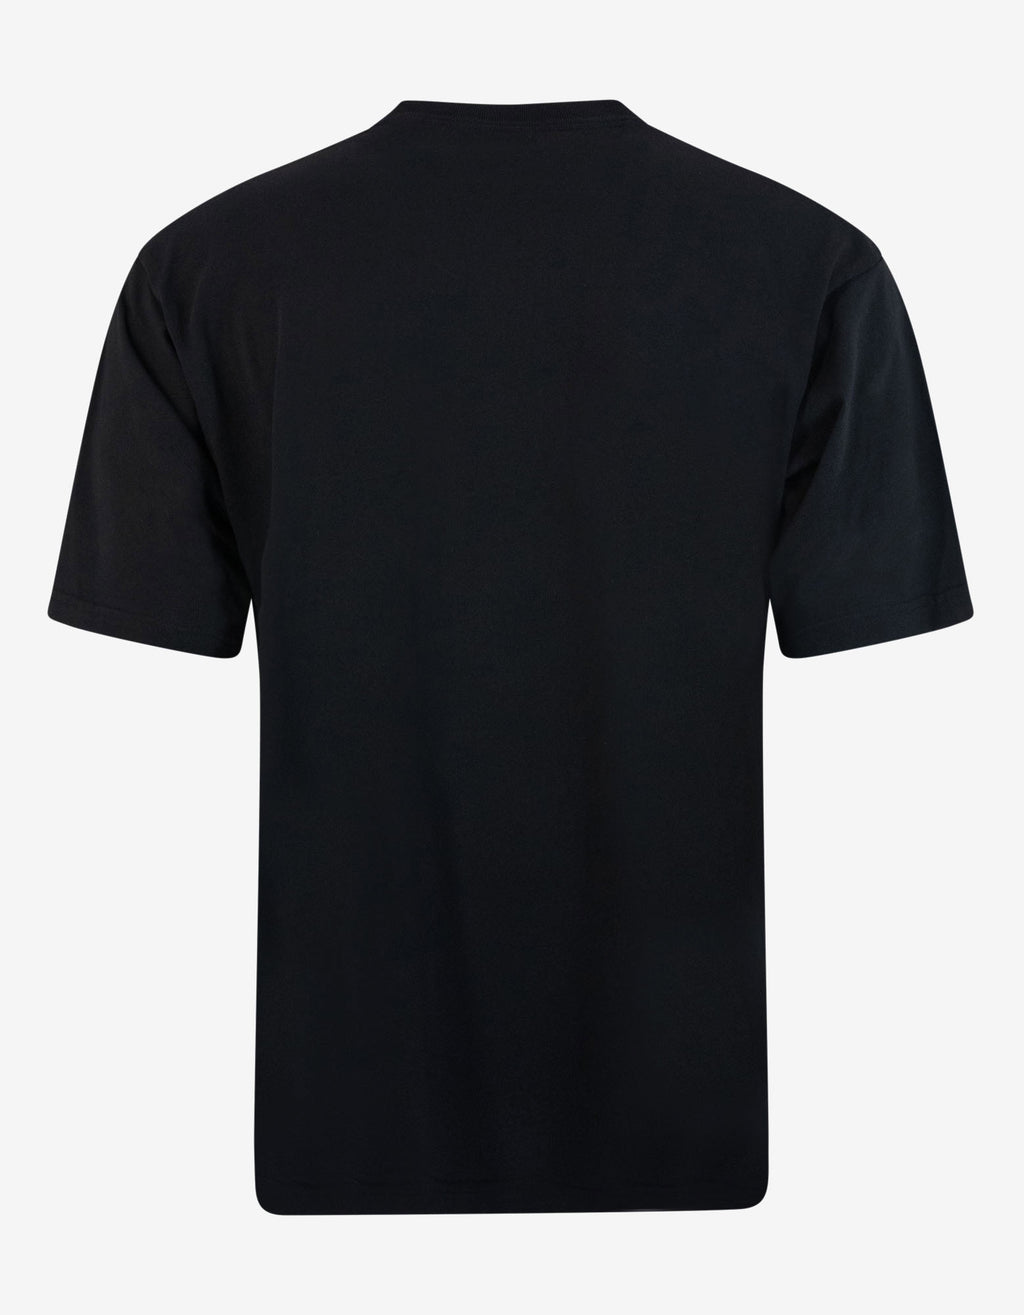 Black Uniform Large Fit T-Shirt